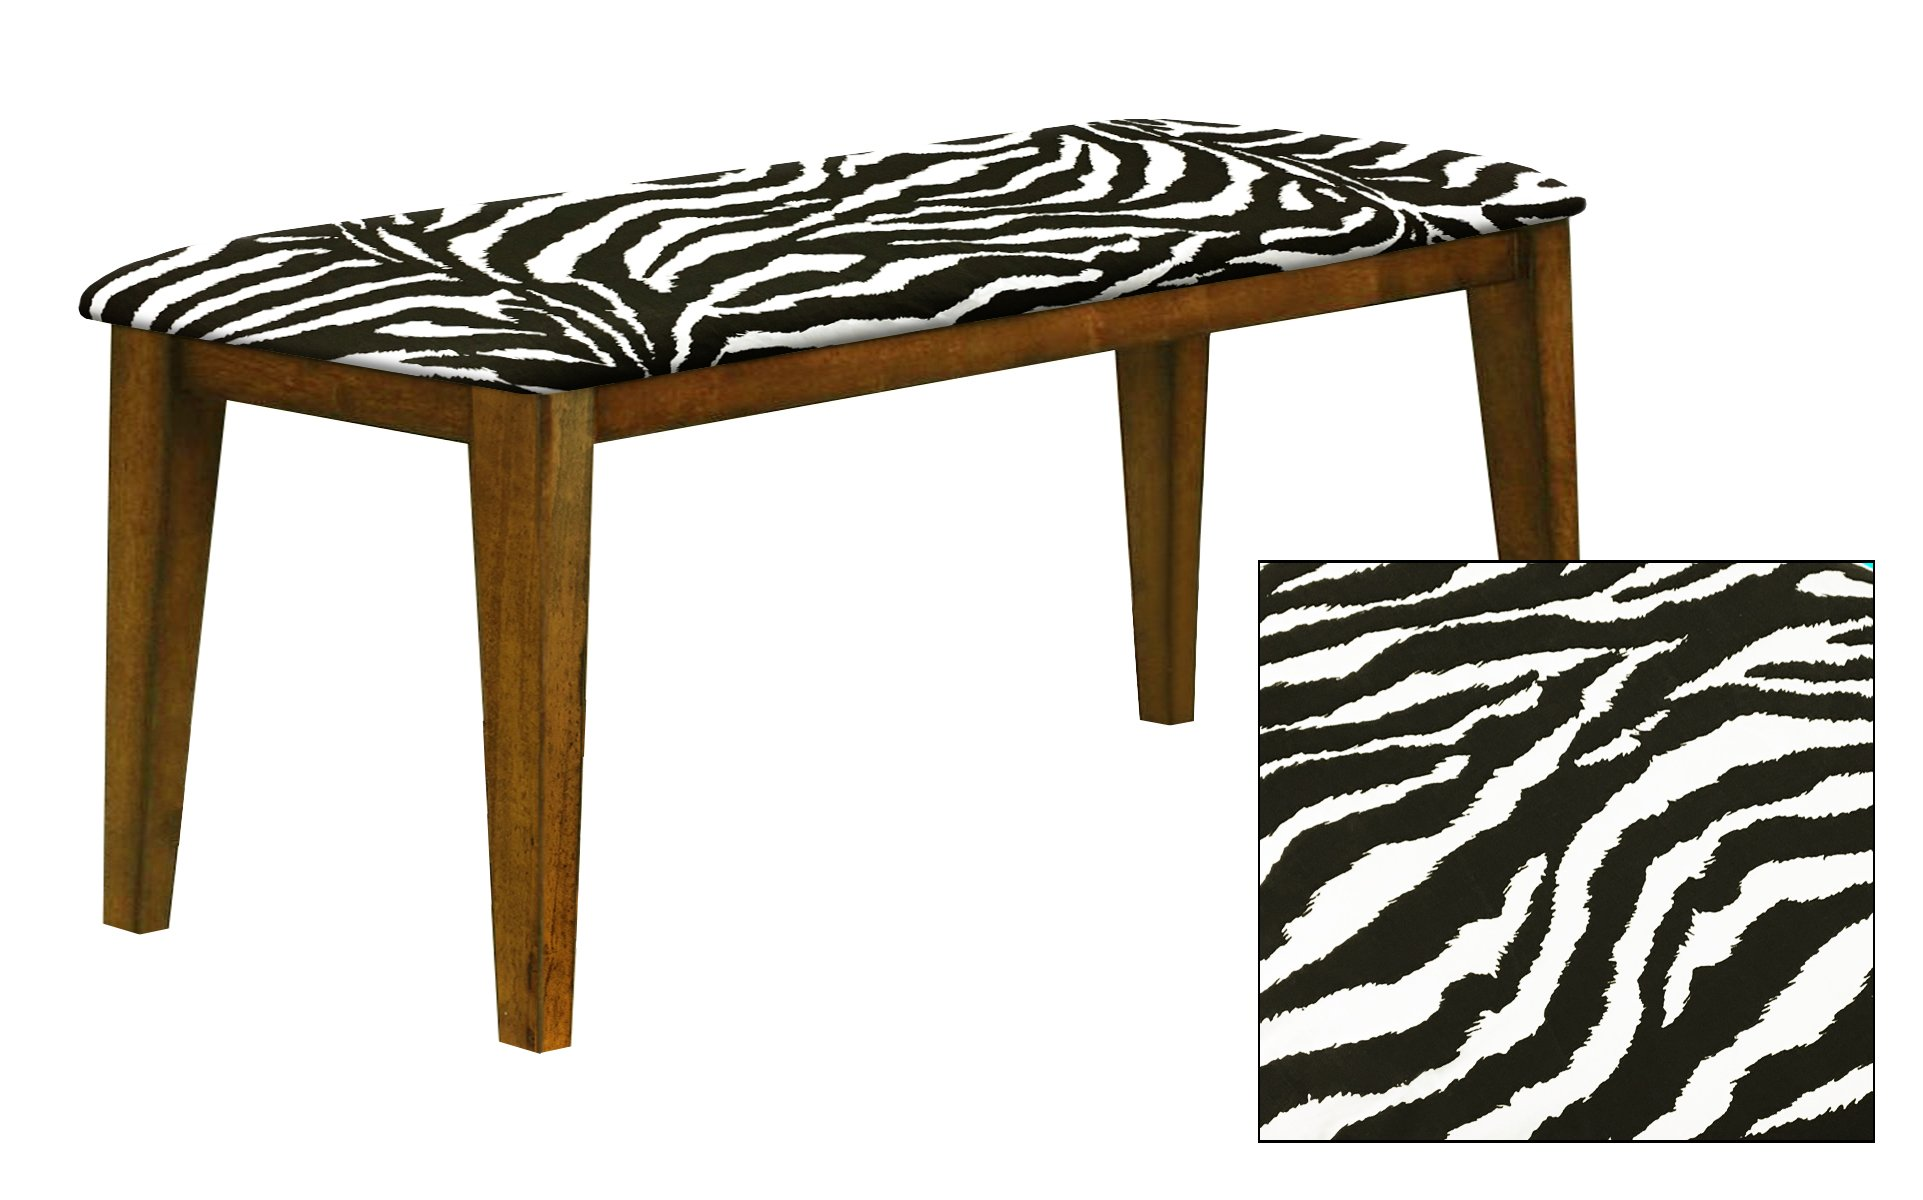 """Oak Finish 19"""" Tall Universal Bench Featuring a Padded Seat Cushion With Your Choice of an Animal Print Fabric Covered Seat Cushion (Black and White Zebra Cotton)"""